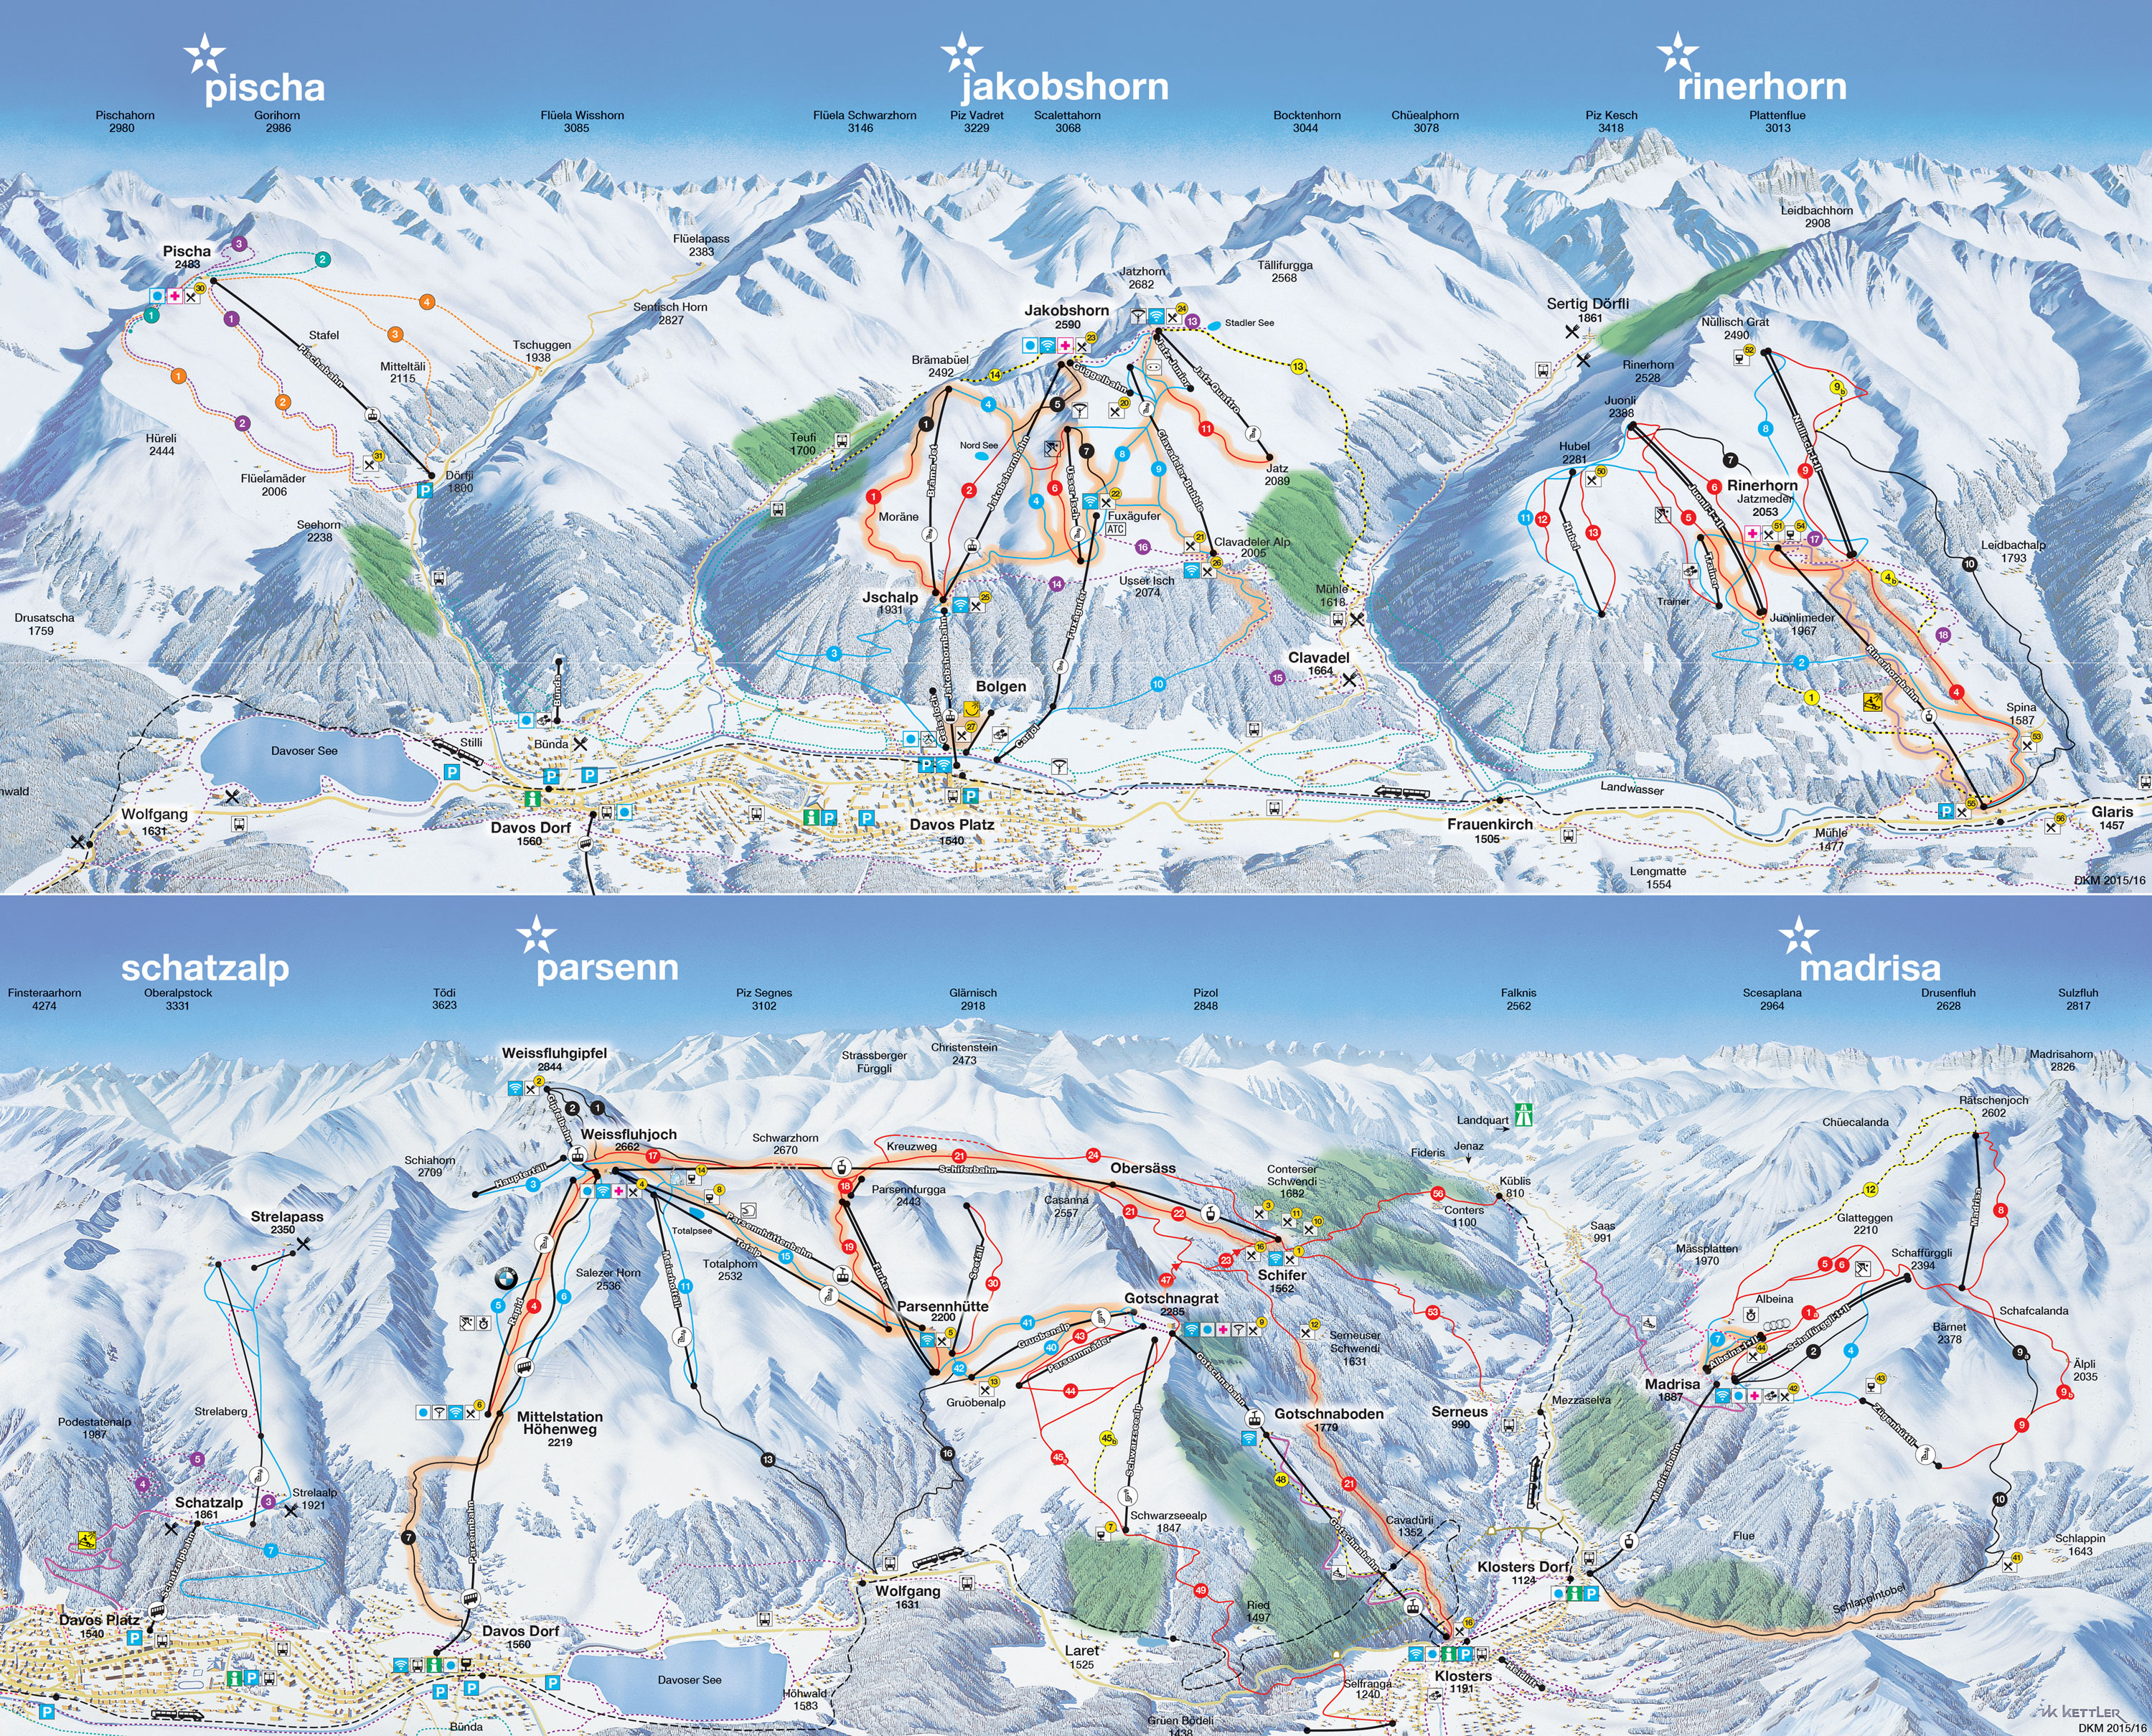 Davos Klosters book apartments and chalets with skisuissecom